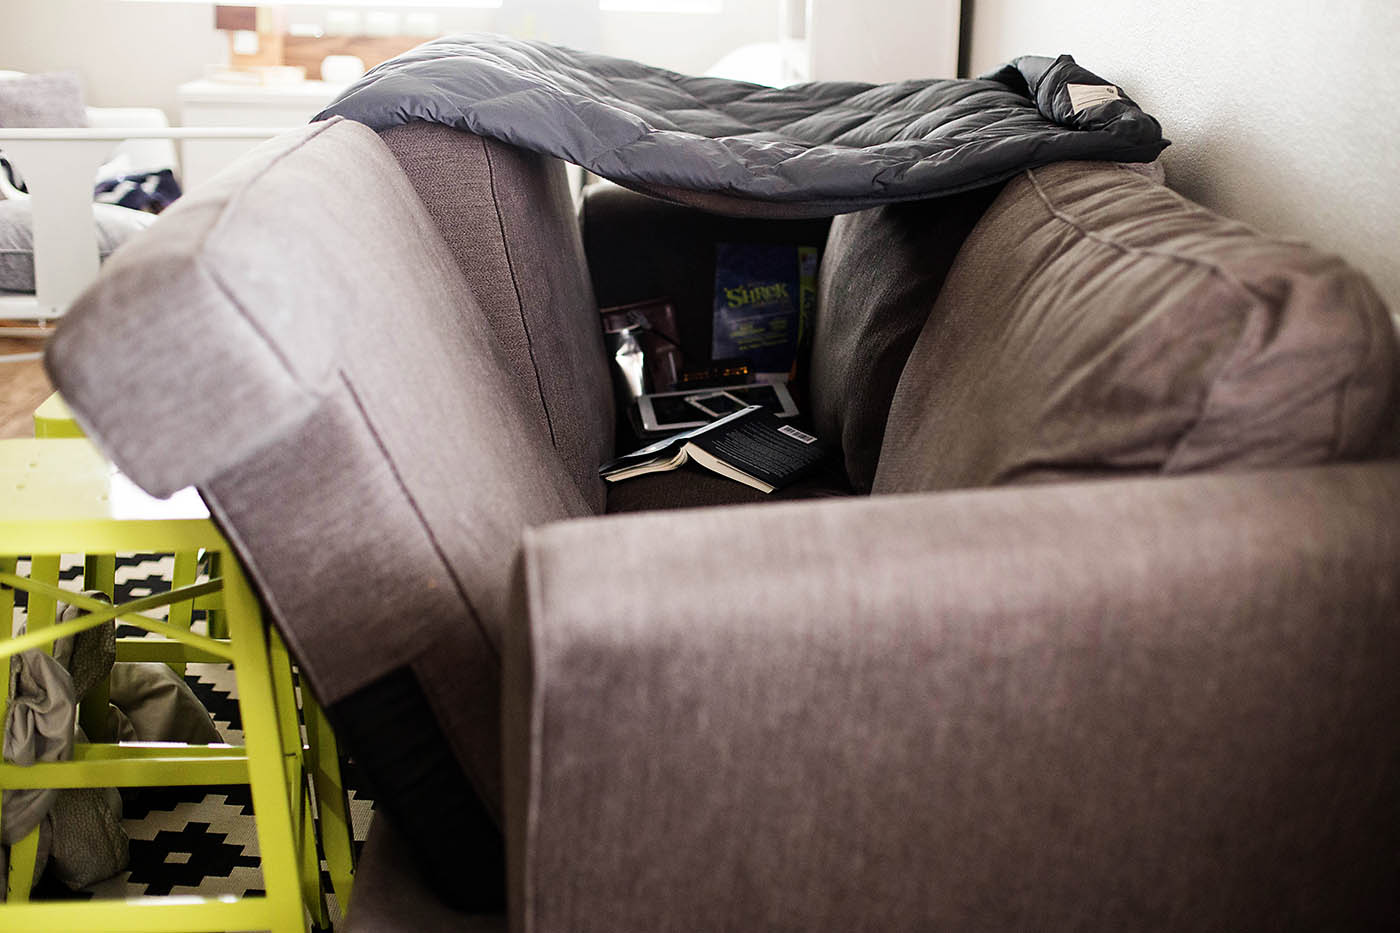 Fort friday - couch fort